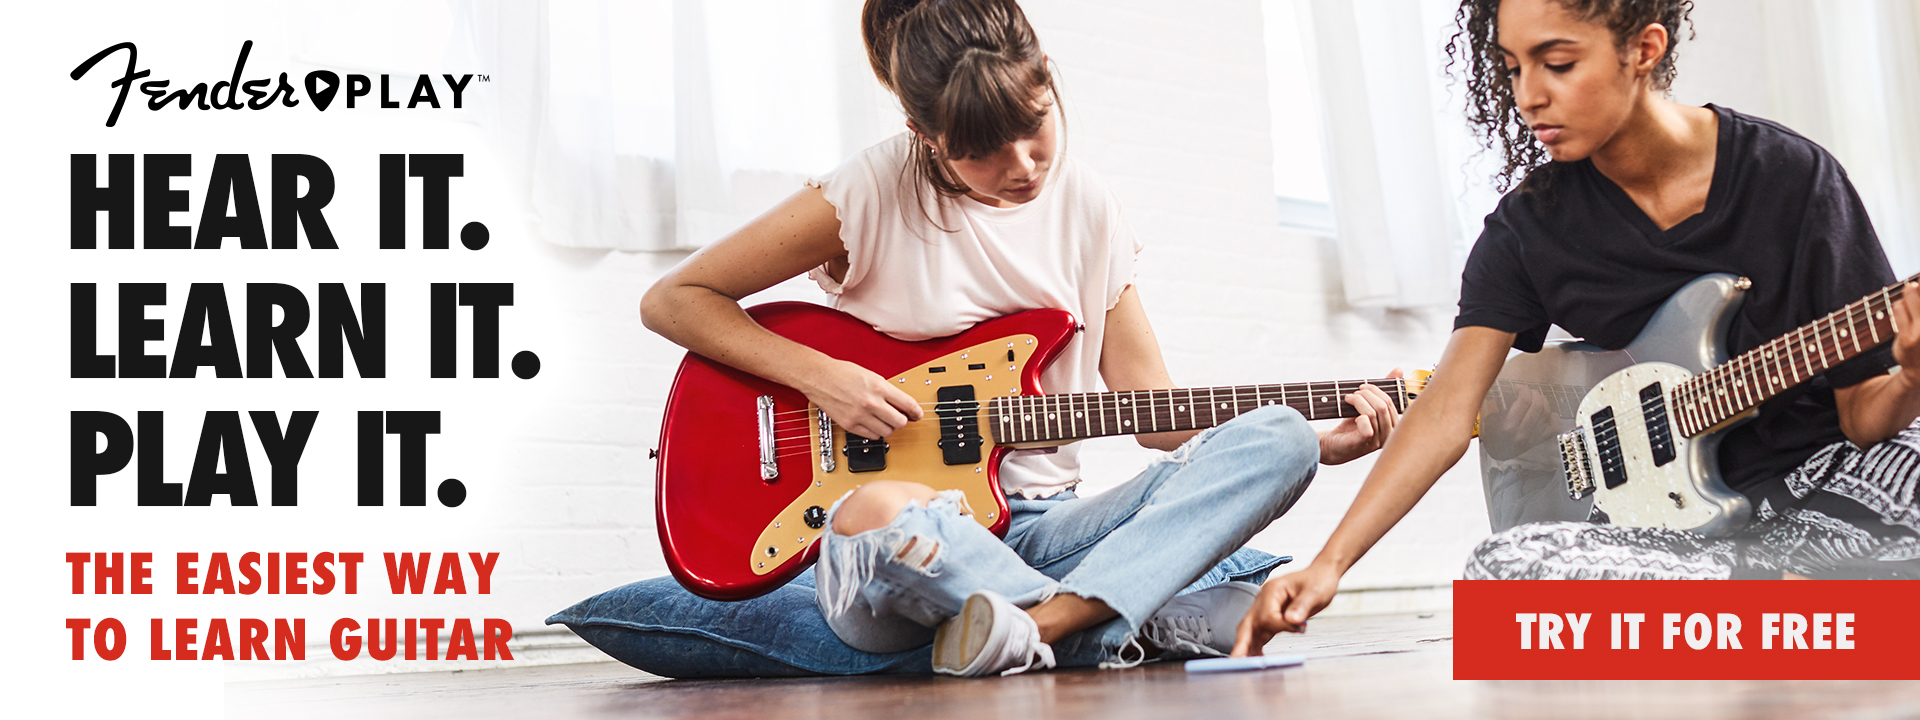 Best Online Guitar Lessons Reviews – The Top 10 Guitar Learning Programs 2